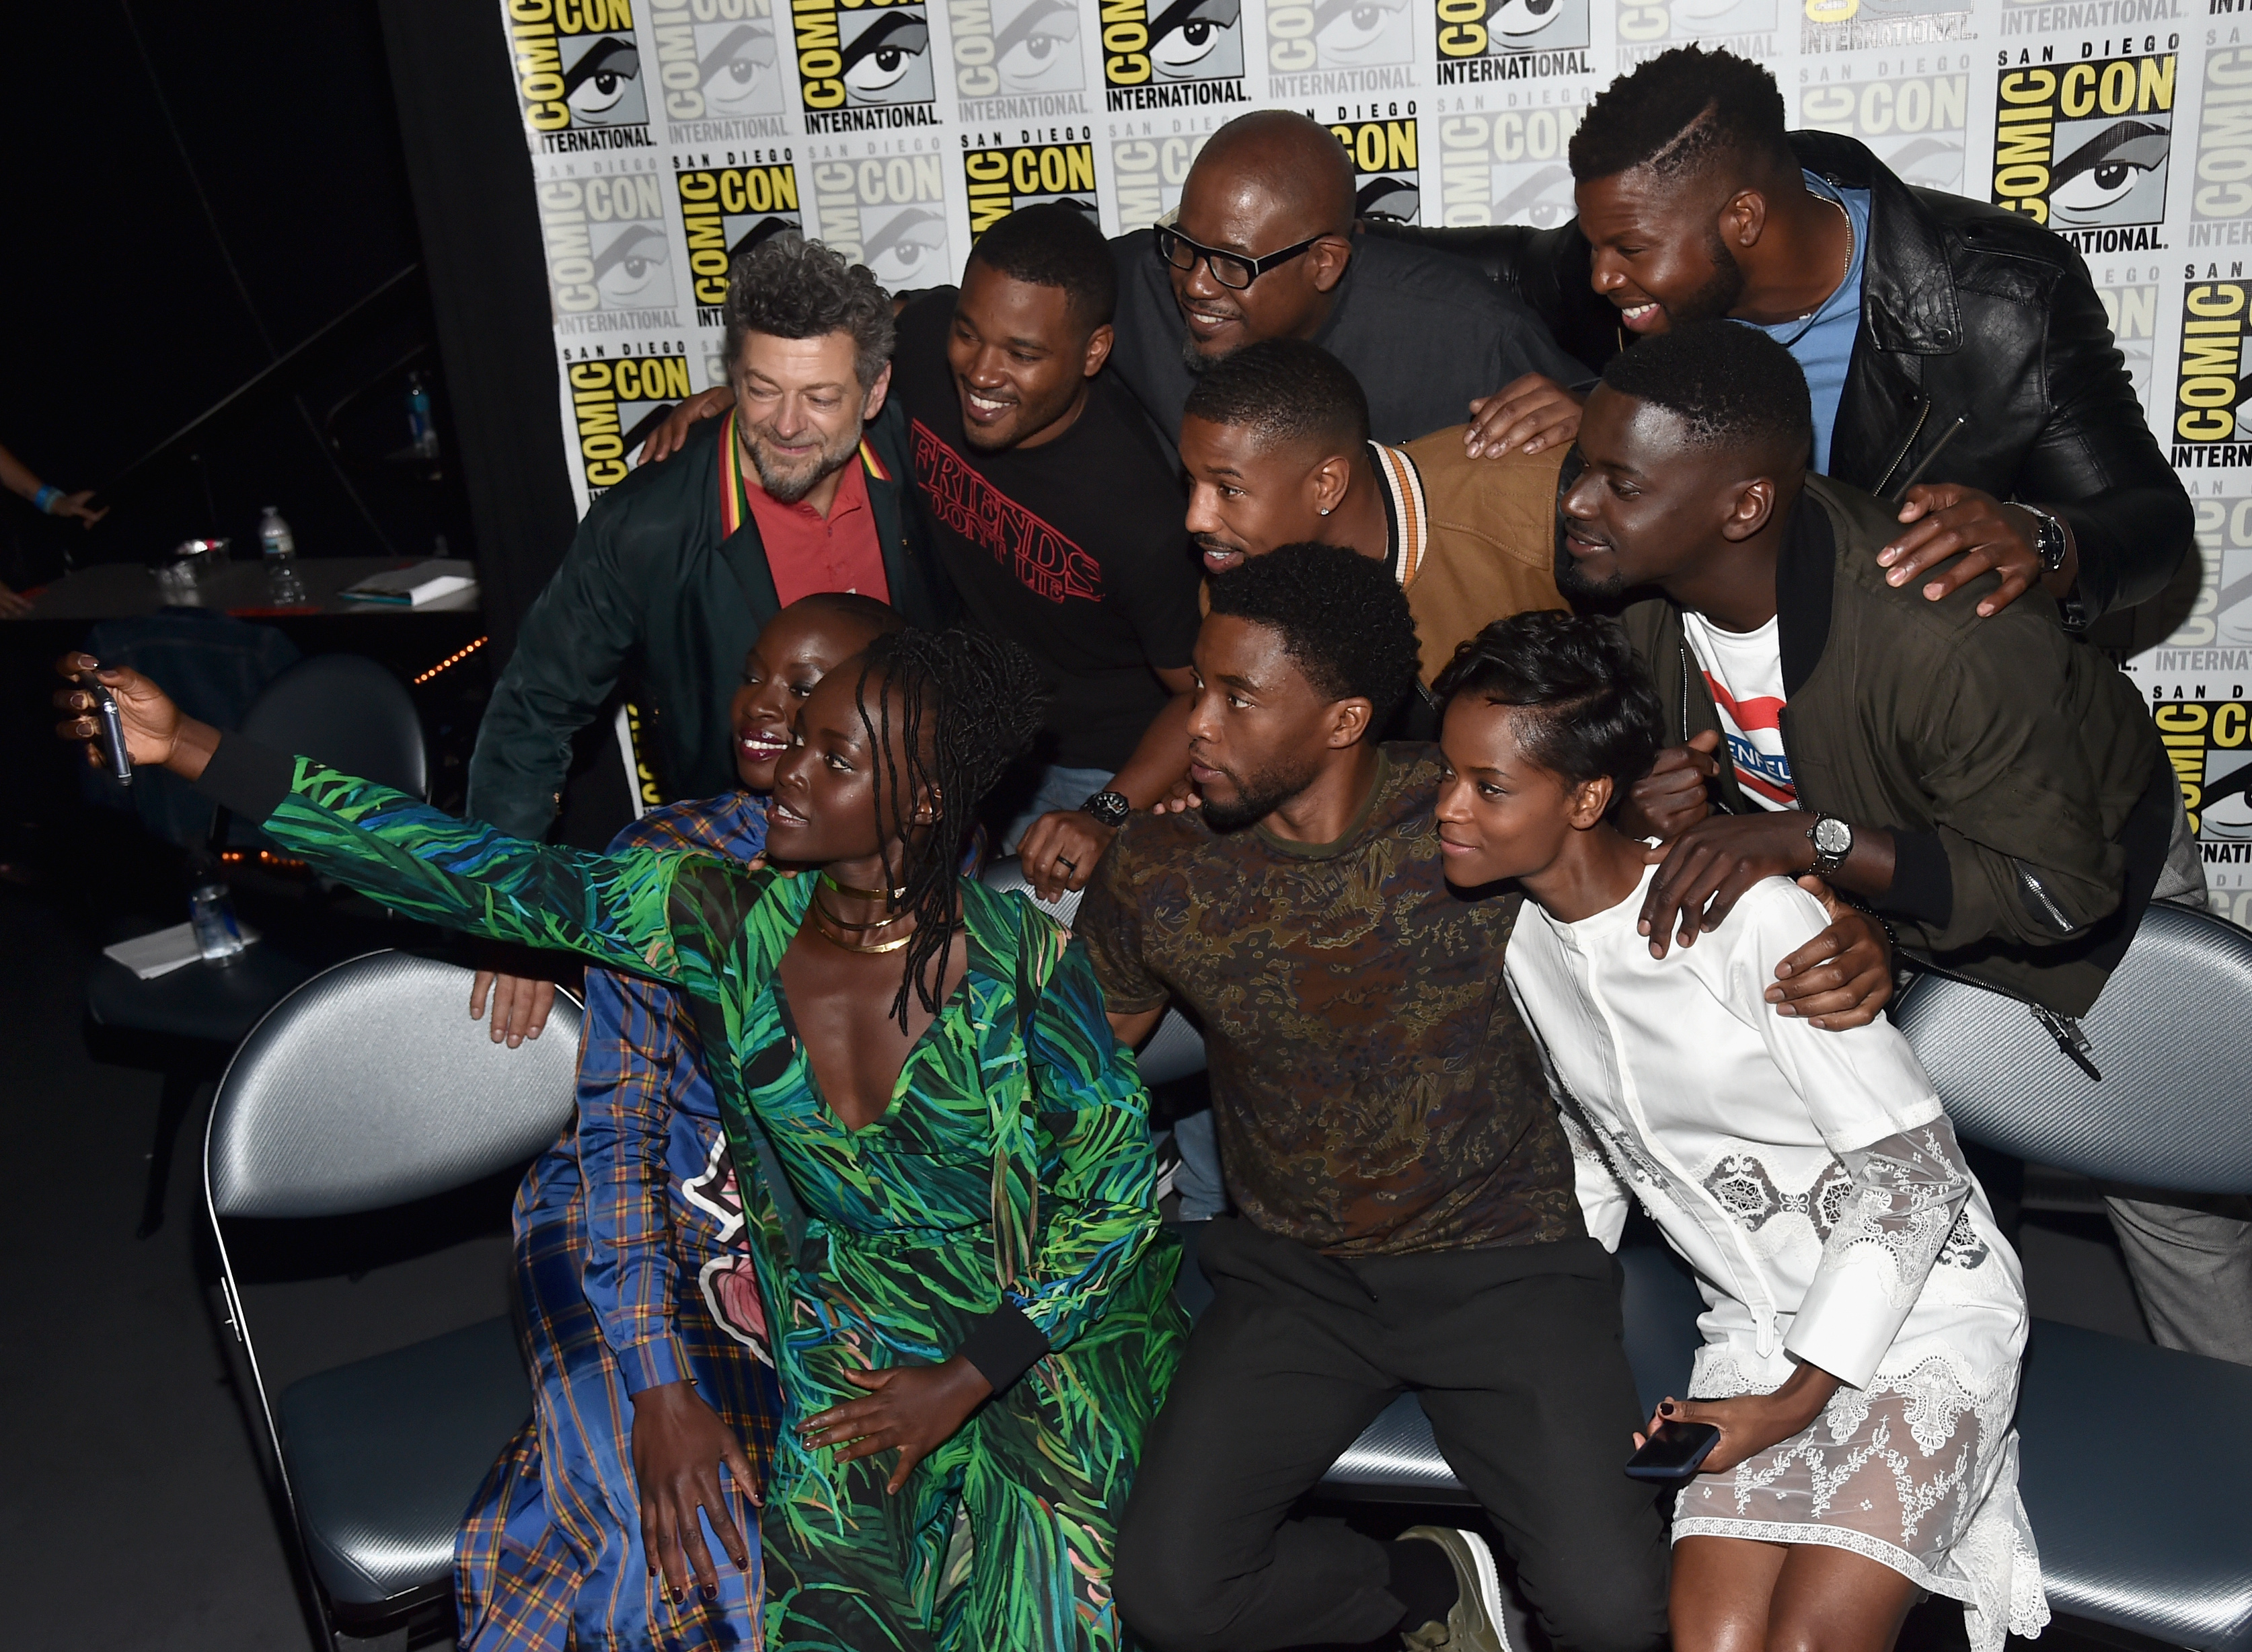 SAN DIEGO, CA - JULY 22:  (Back row L - R) Actor Andy Serkis, director Ryan Coogler, actors Forest Whitaker, Michael B. Jordan, Winston Duke, Daniel Kaluuya, (front row L - R) Danai Gurira, Lupita Nyong'o, Chadwick Boseman and Letitia Wright from Marvel Studios' 'Black Panther' at the San Diego Comic-Con International 2017 Marvel Studios Panel in Hall H on July 22, 2017 in San Diego, California.  (Photo by Alberto E. Rodriguez/Getty Images for Disney) *** Local Caption *** Andy Serkis; Ryan Coogler; Forest Whitaker; Michael B. Jordan; Winston Duke; Daniel Kaluuya; Danai Gurira; Lupita Nyong'o; Chadwick Boseman; Letitia Wright